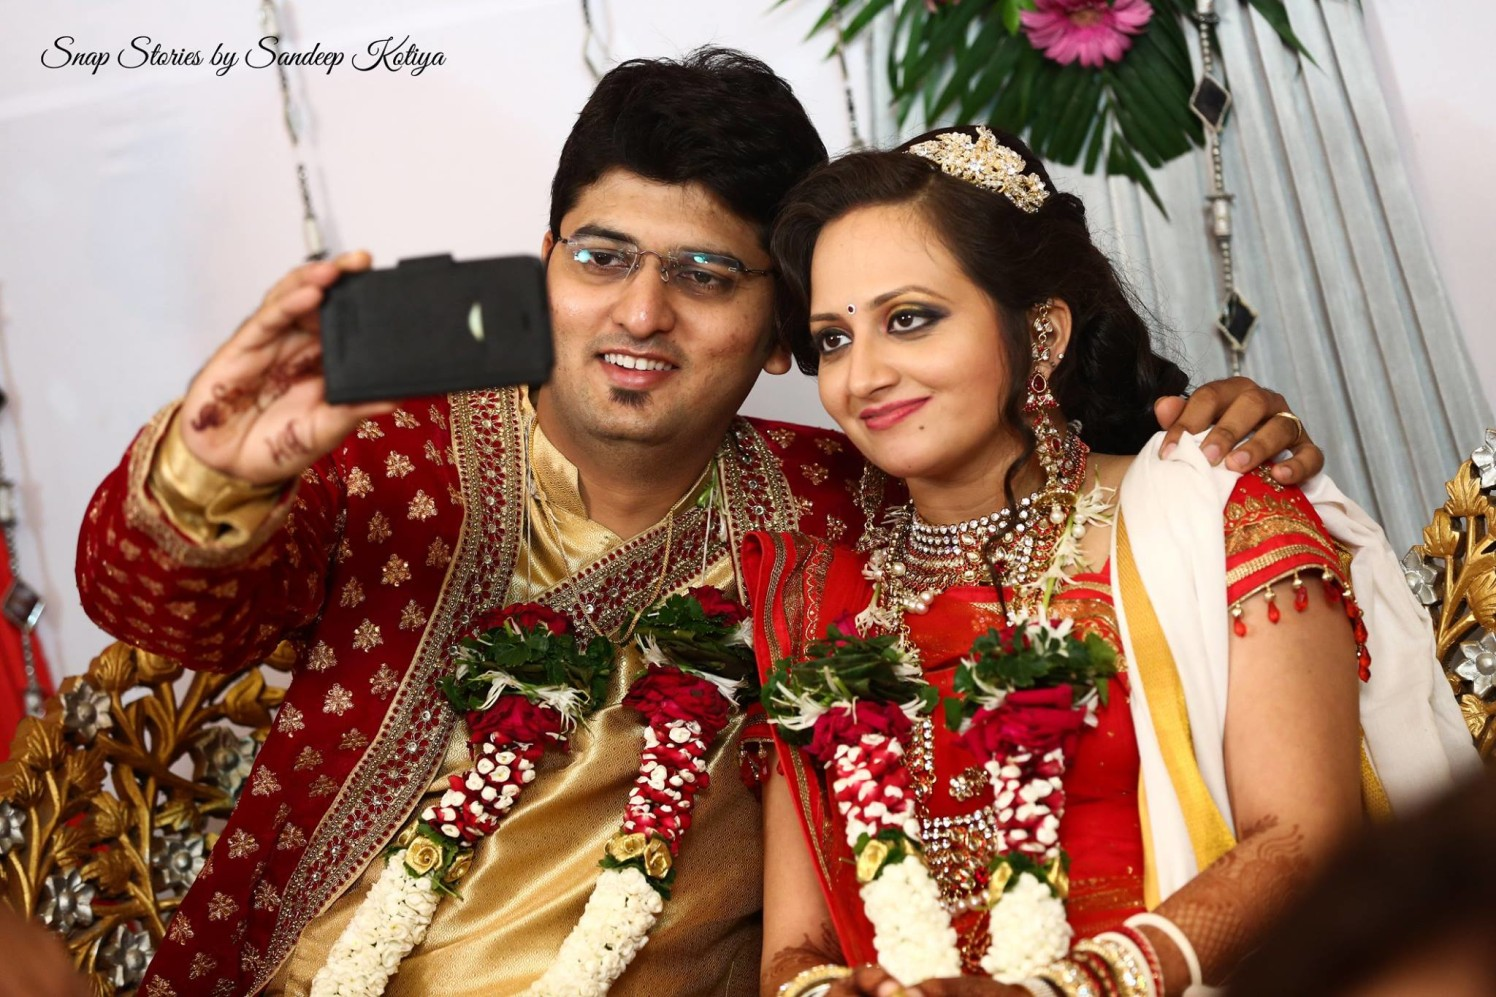 Let me take our selfie! by sandip kotia Photography Wedding-photography Bridal-jewellery-and-accessories | Weddings Photos & Ideas